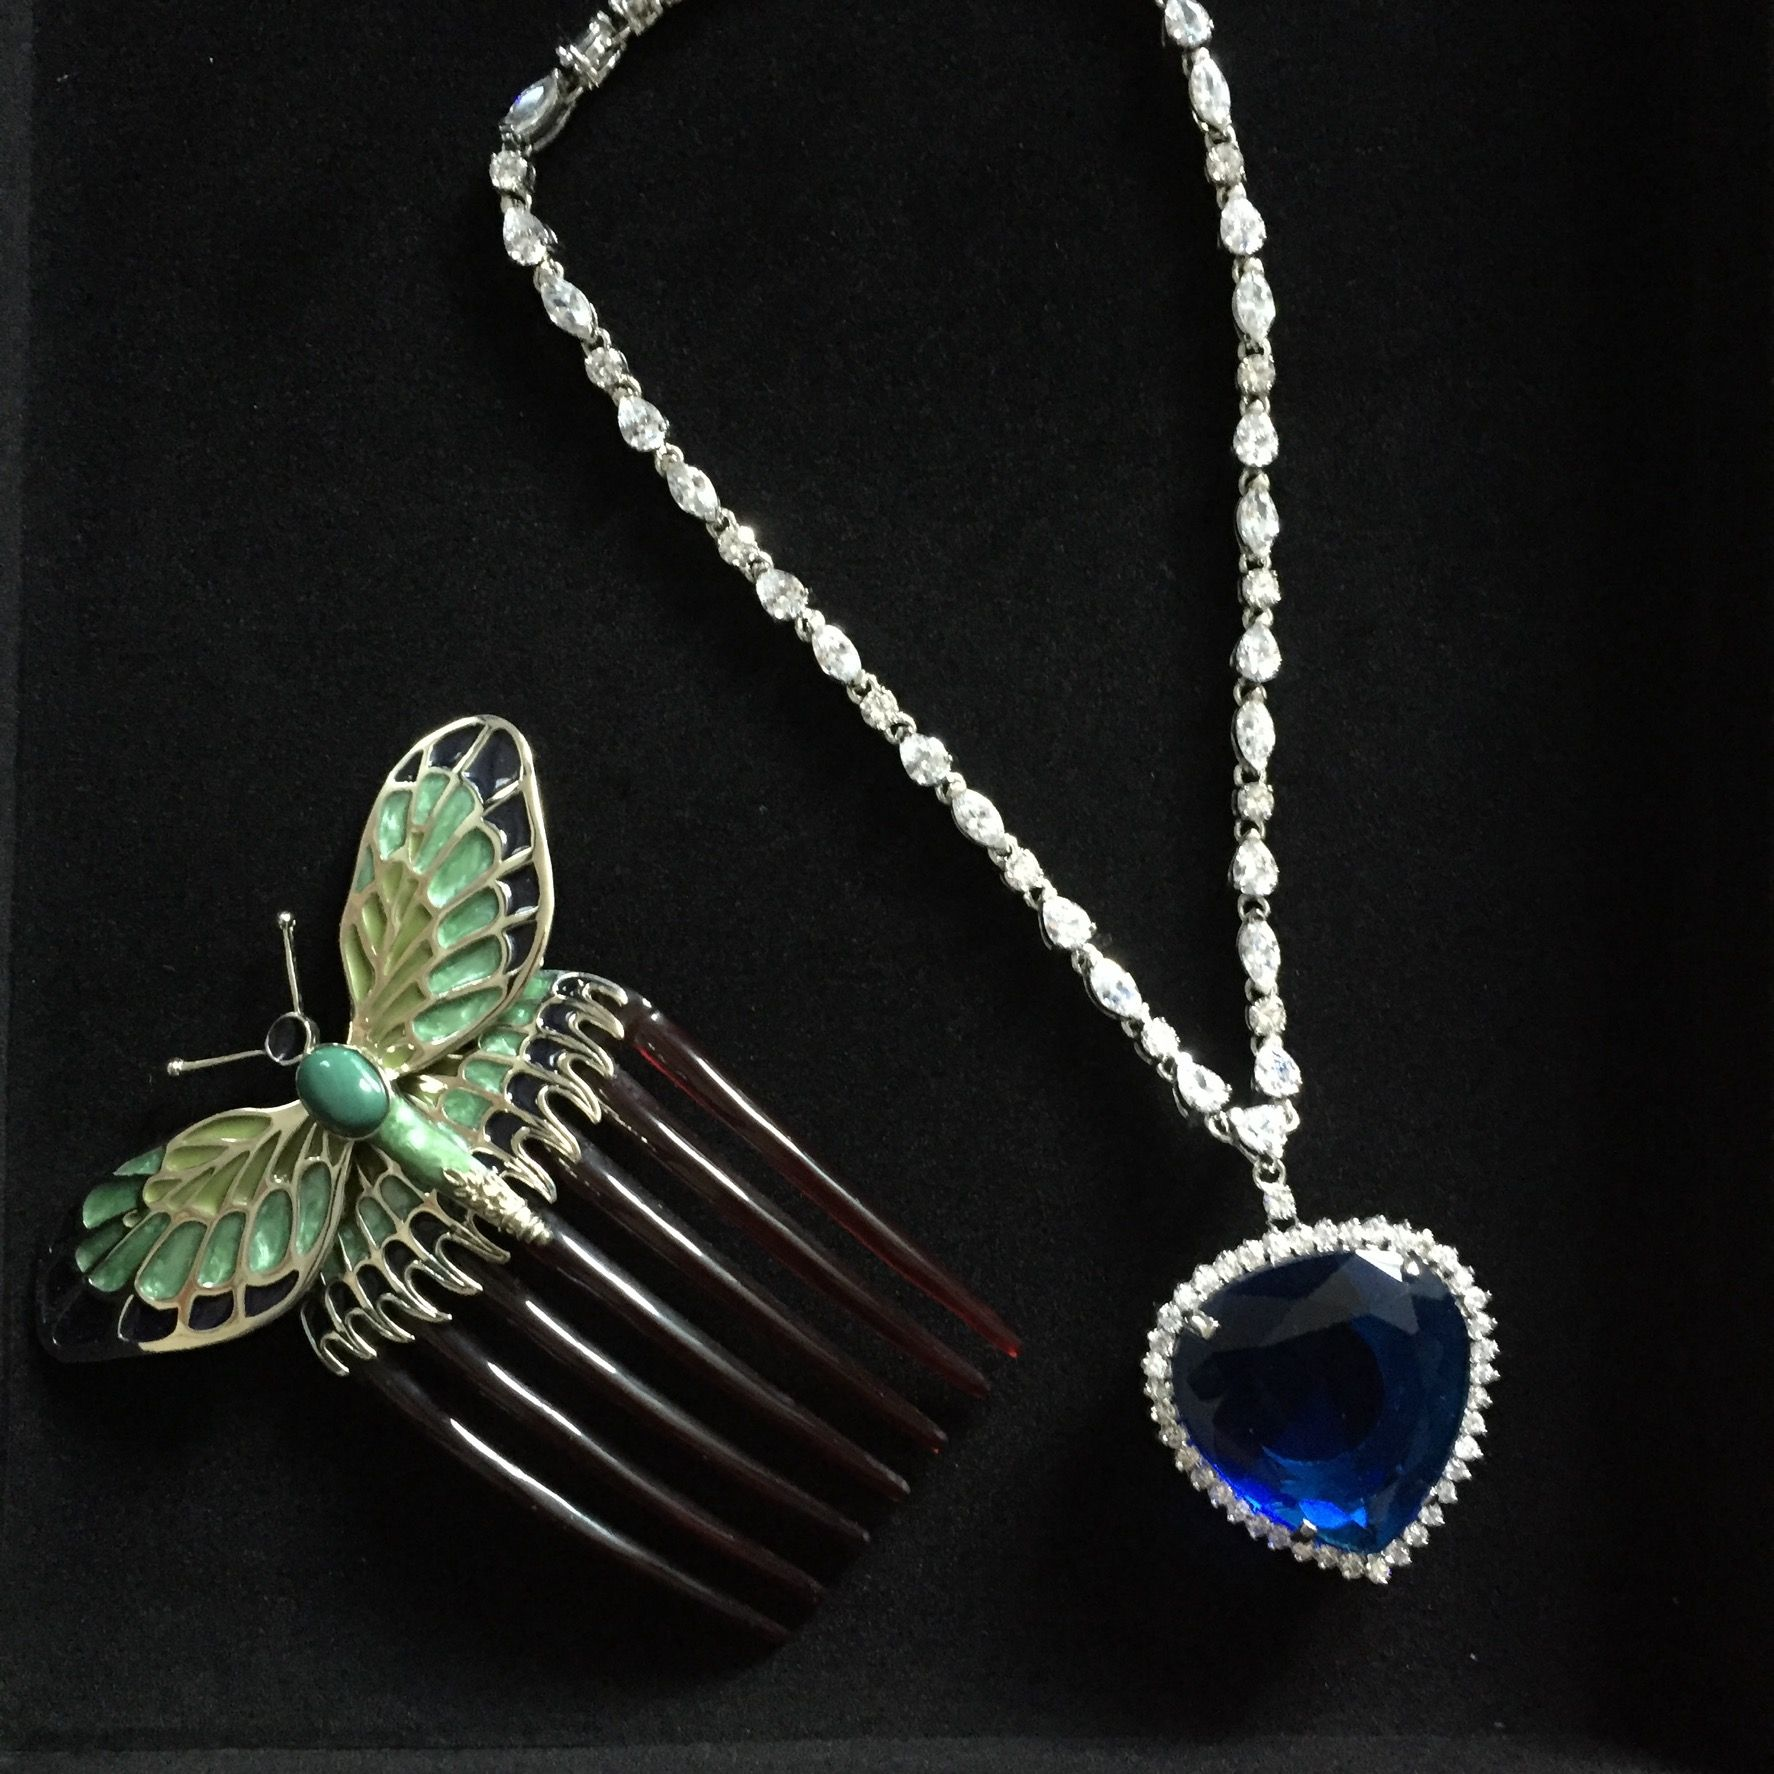 540fa7033e4256 Titanic necklace and comb. Heart of the ocean